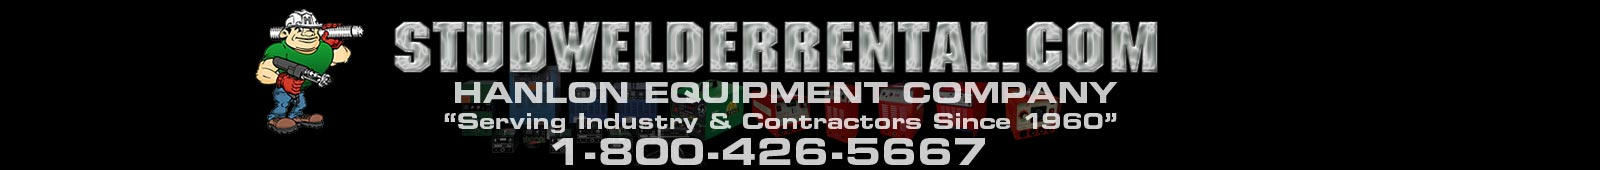 www.studwelderrental.com